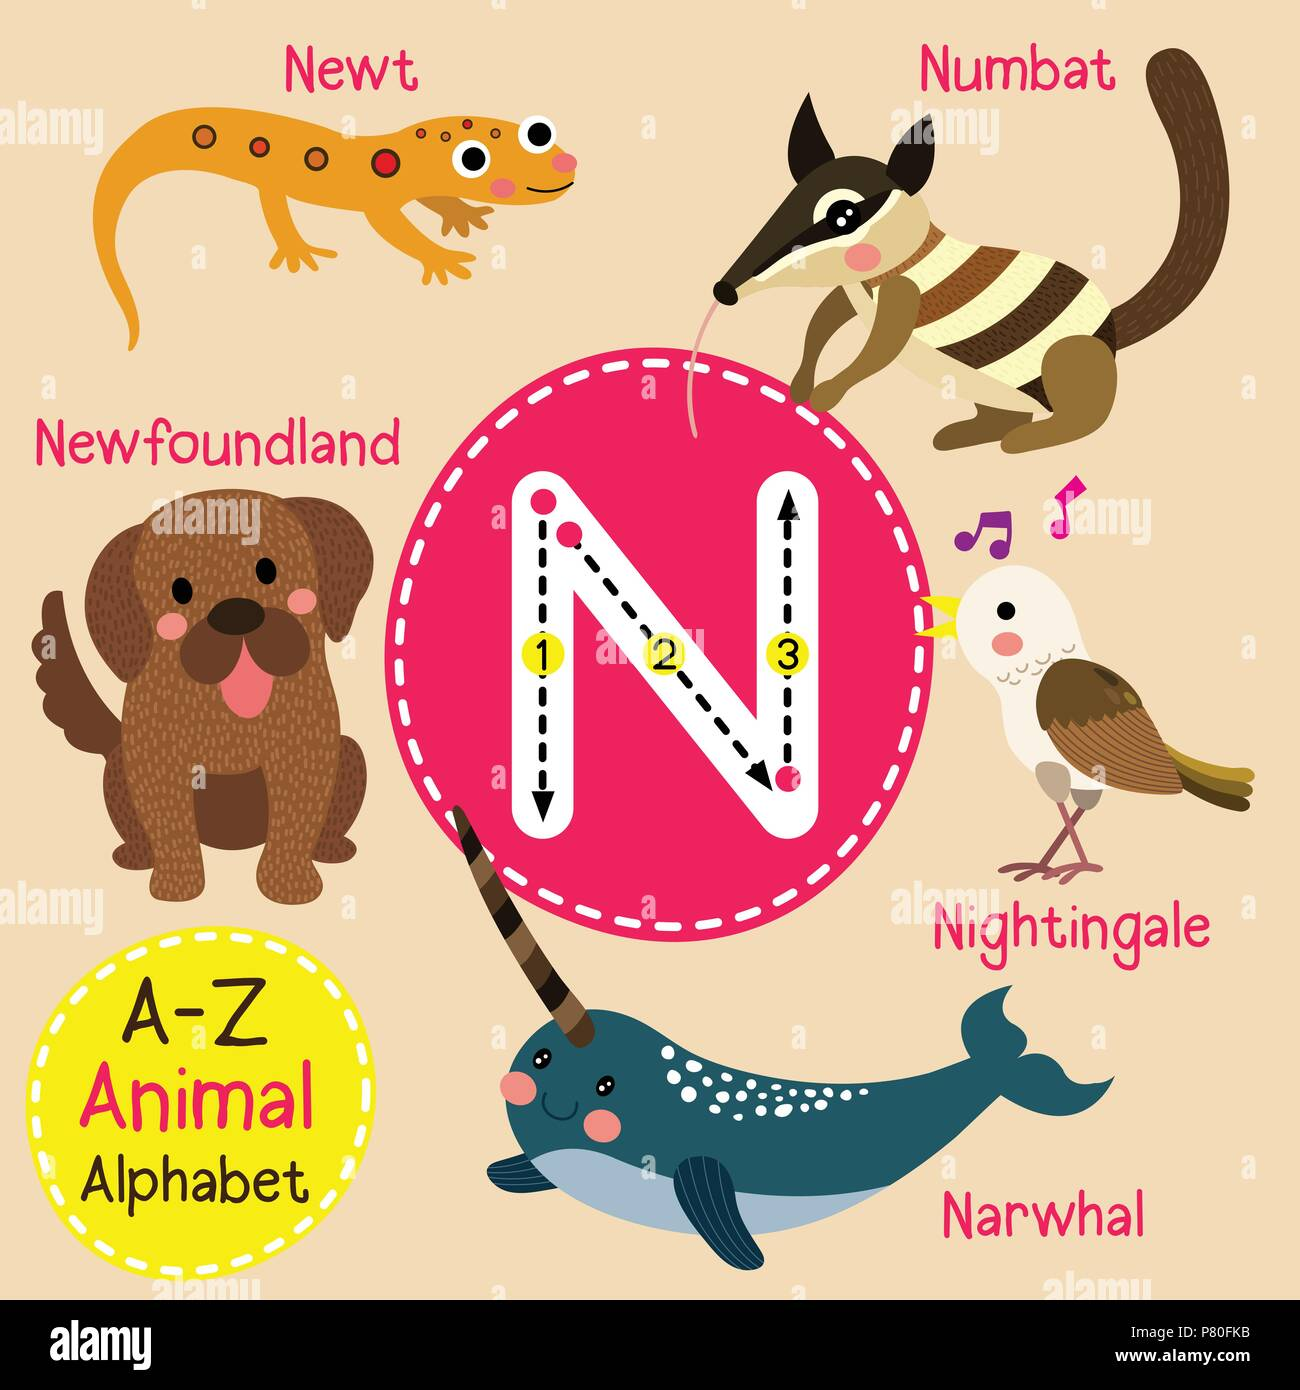 Nightingale Cute Children Zoo Alphabet Letter Tracing Of Funny Animal Cartoon For Kids Learning English Vocabulary Alamy Cute Children Zoo Alphabet Letter Tracing Of Funny Animal Cartoon